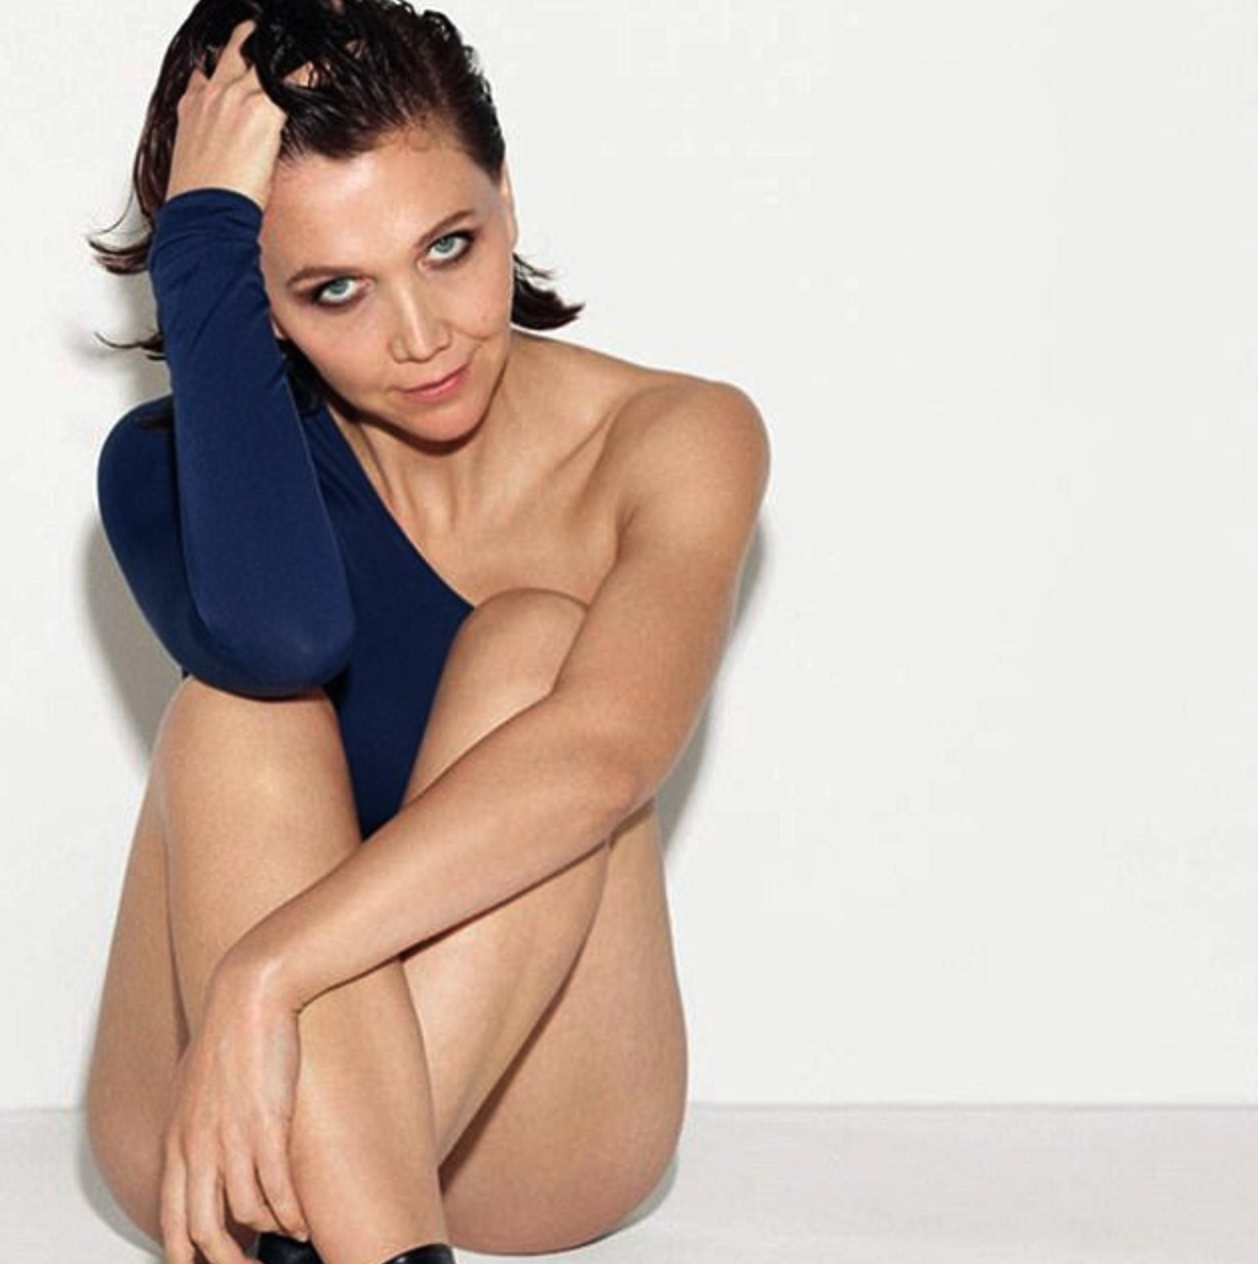 Maggie Gyllenhaal Leaves Little to the Imagination in Leggy New Ad Campaign [PICS]